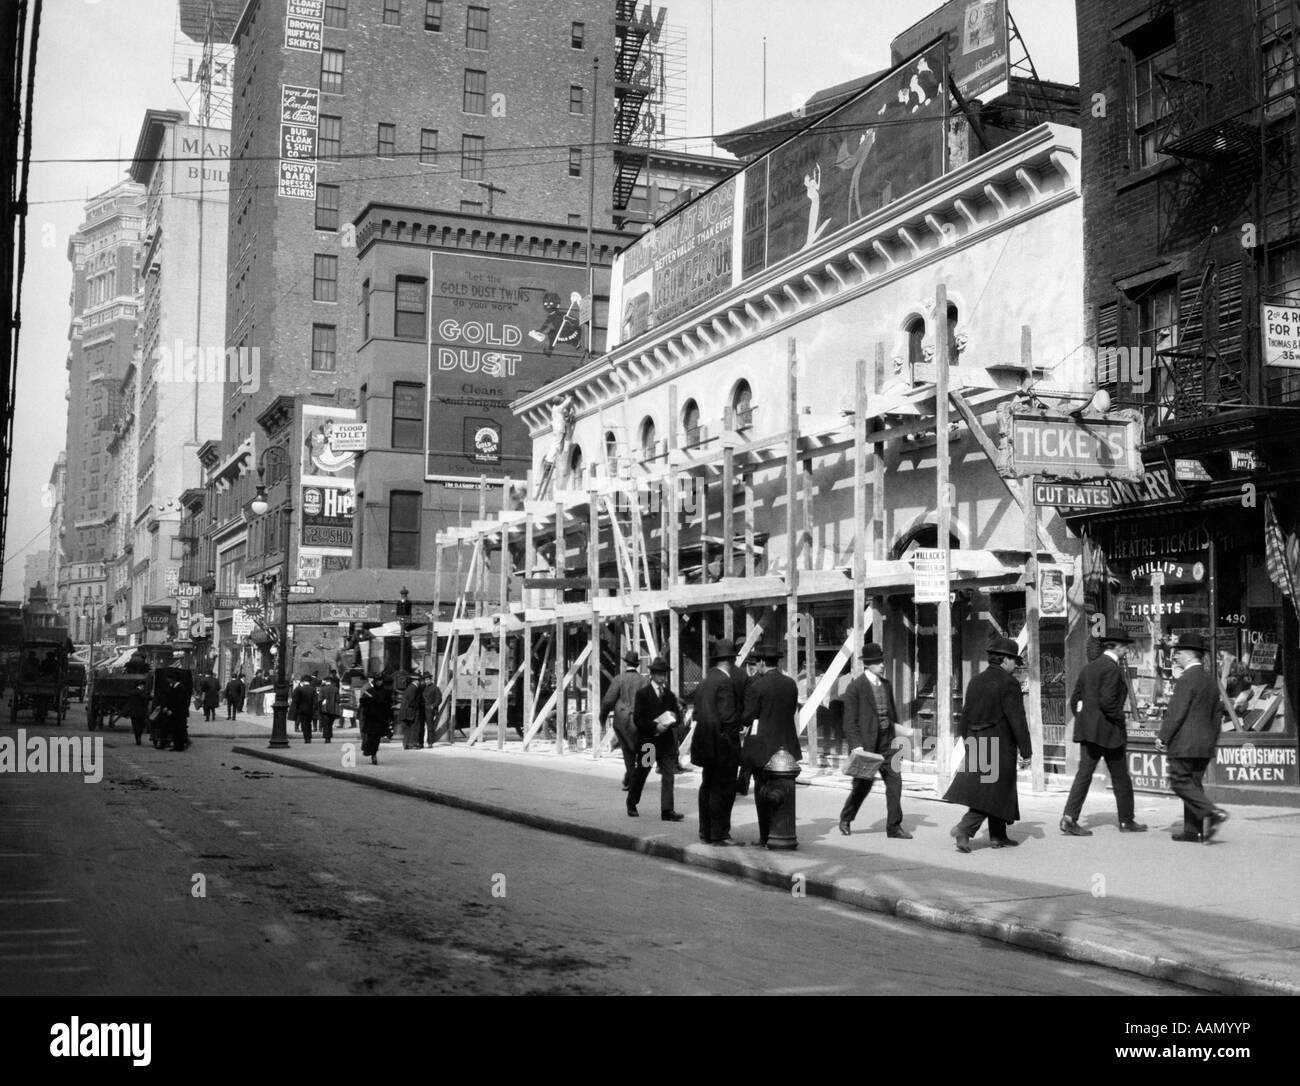 1915 1916 NEW YORK CITY HAYMARKET THEATER BECOMES MOVIE HOUSE END OF THE TENDERLOIN 6TH AVENUE AND 30TH STREET - Stock Image